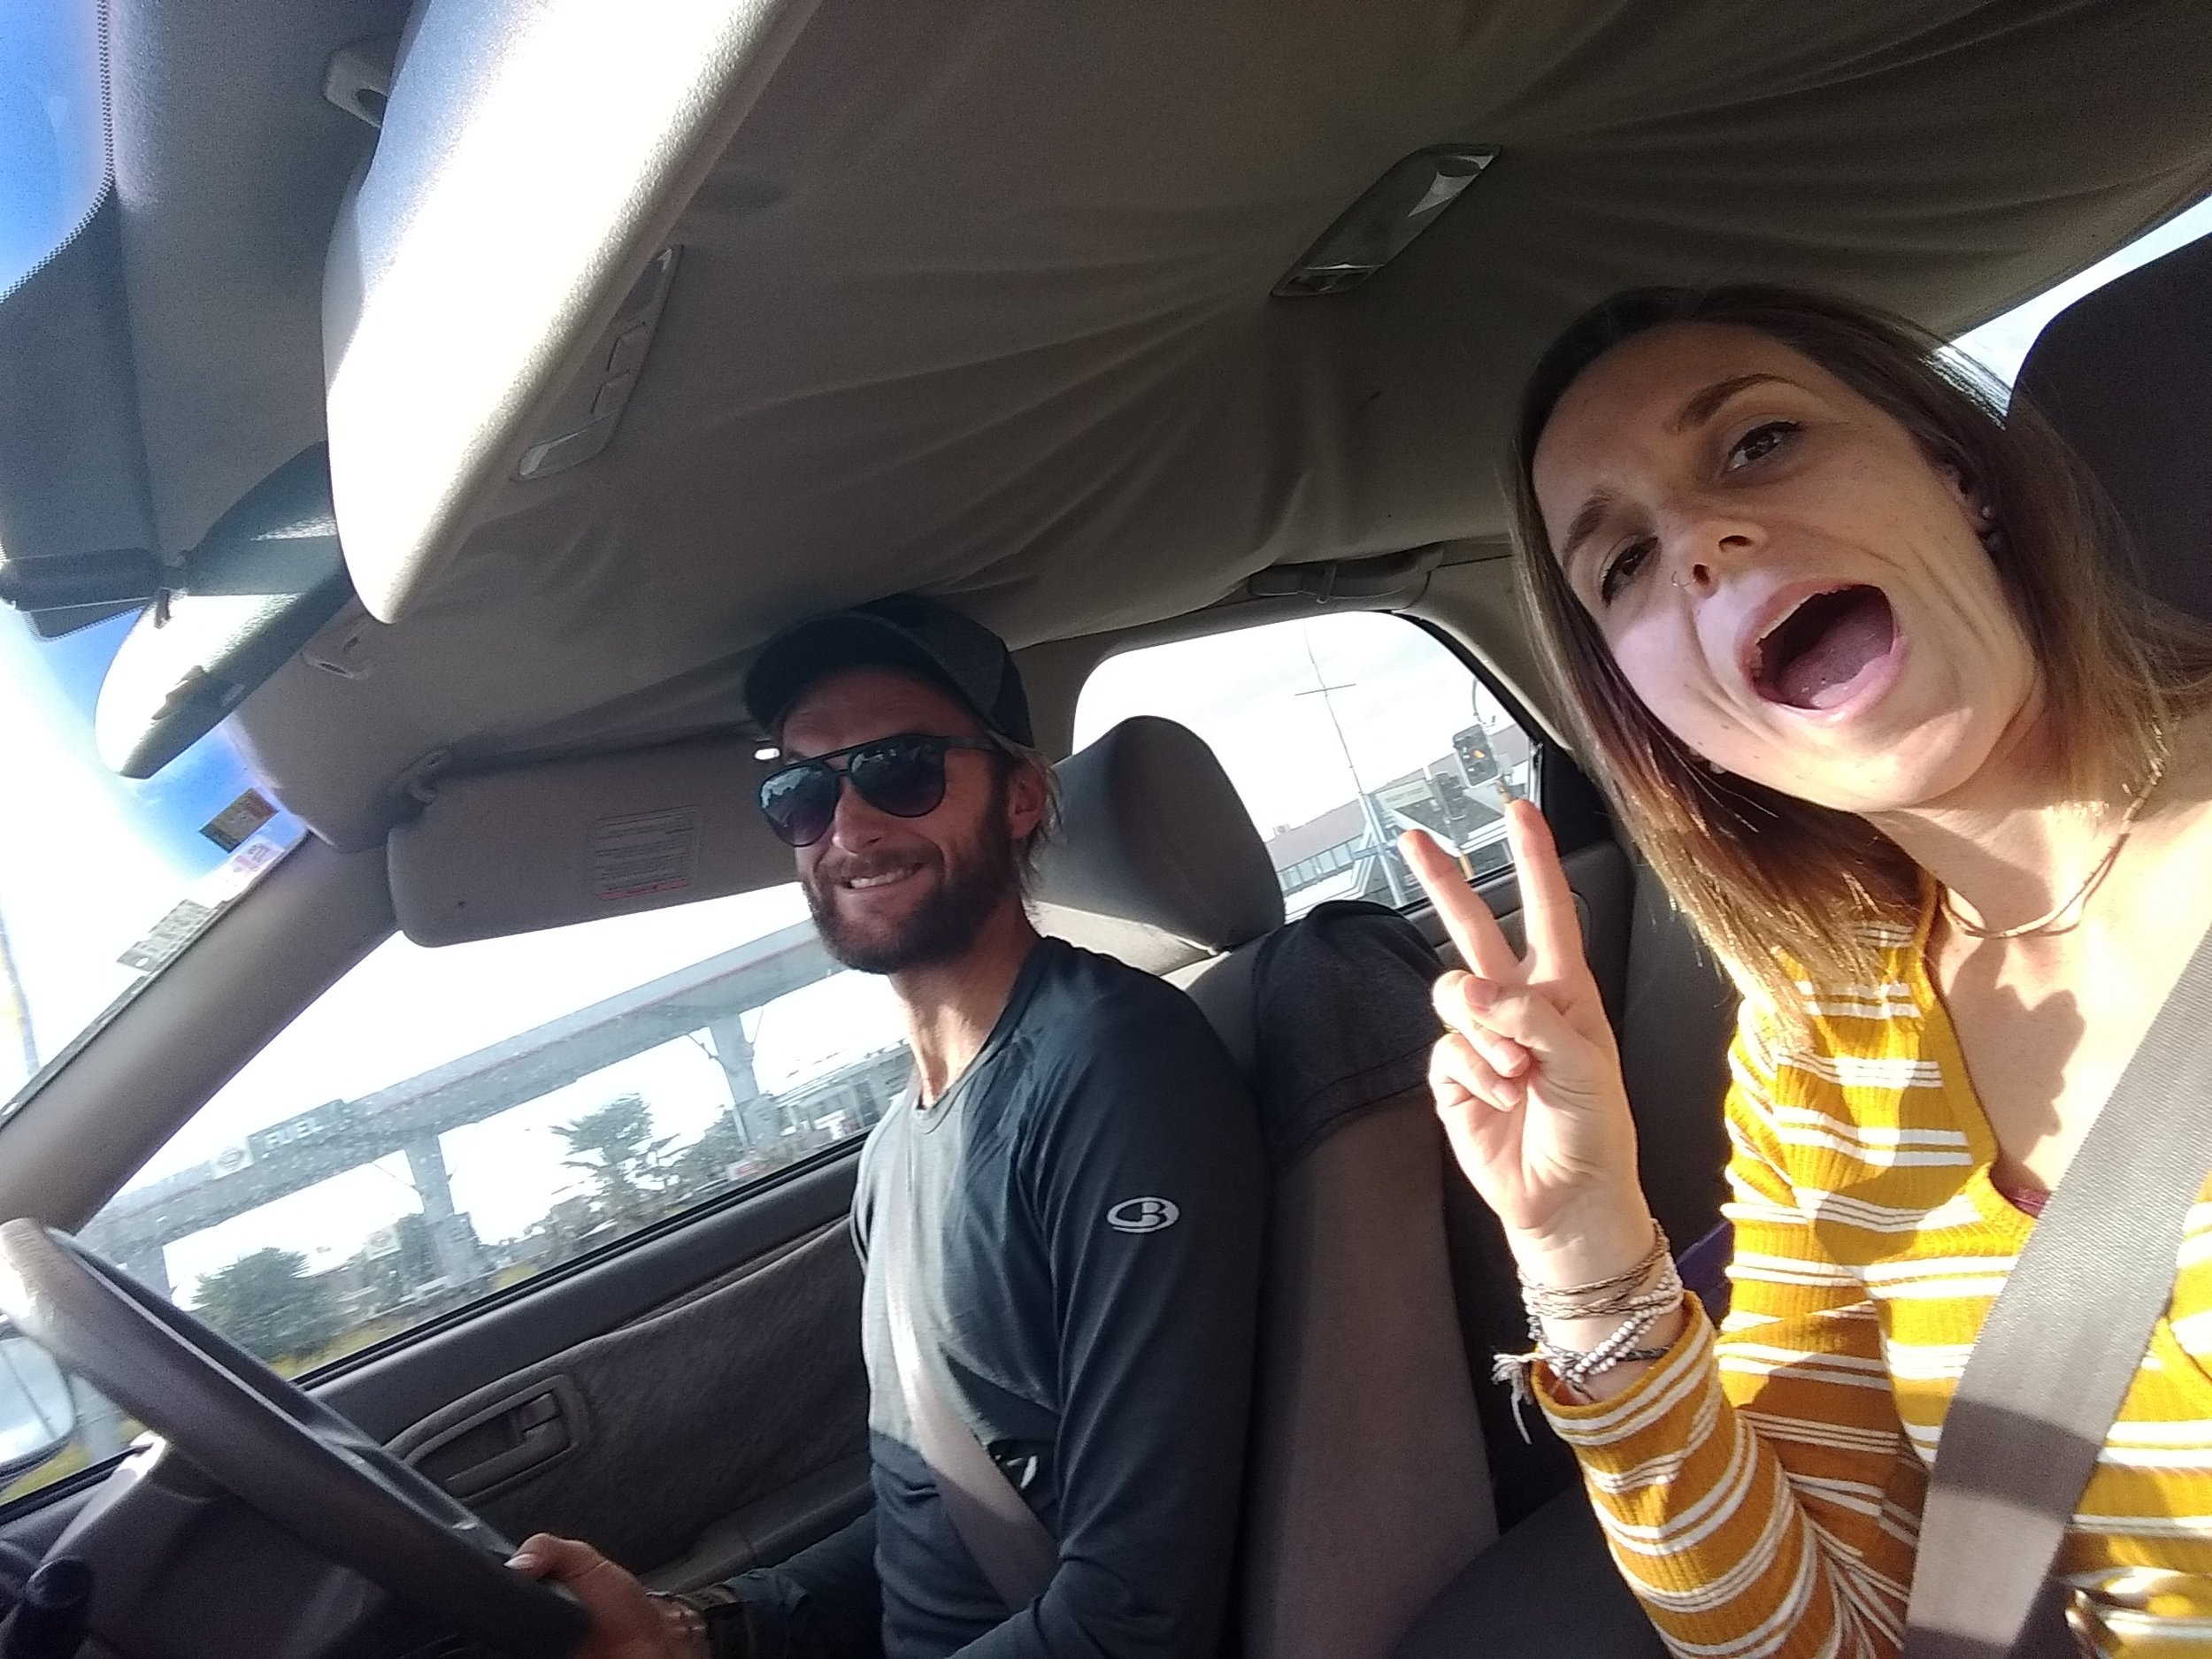 Road-Trip Baby!